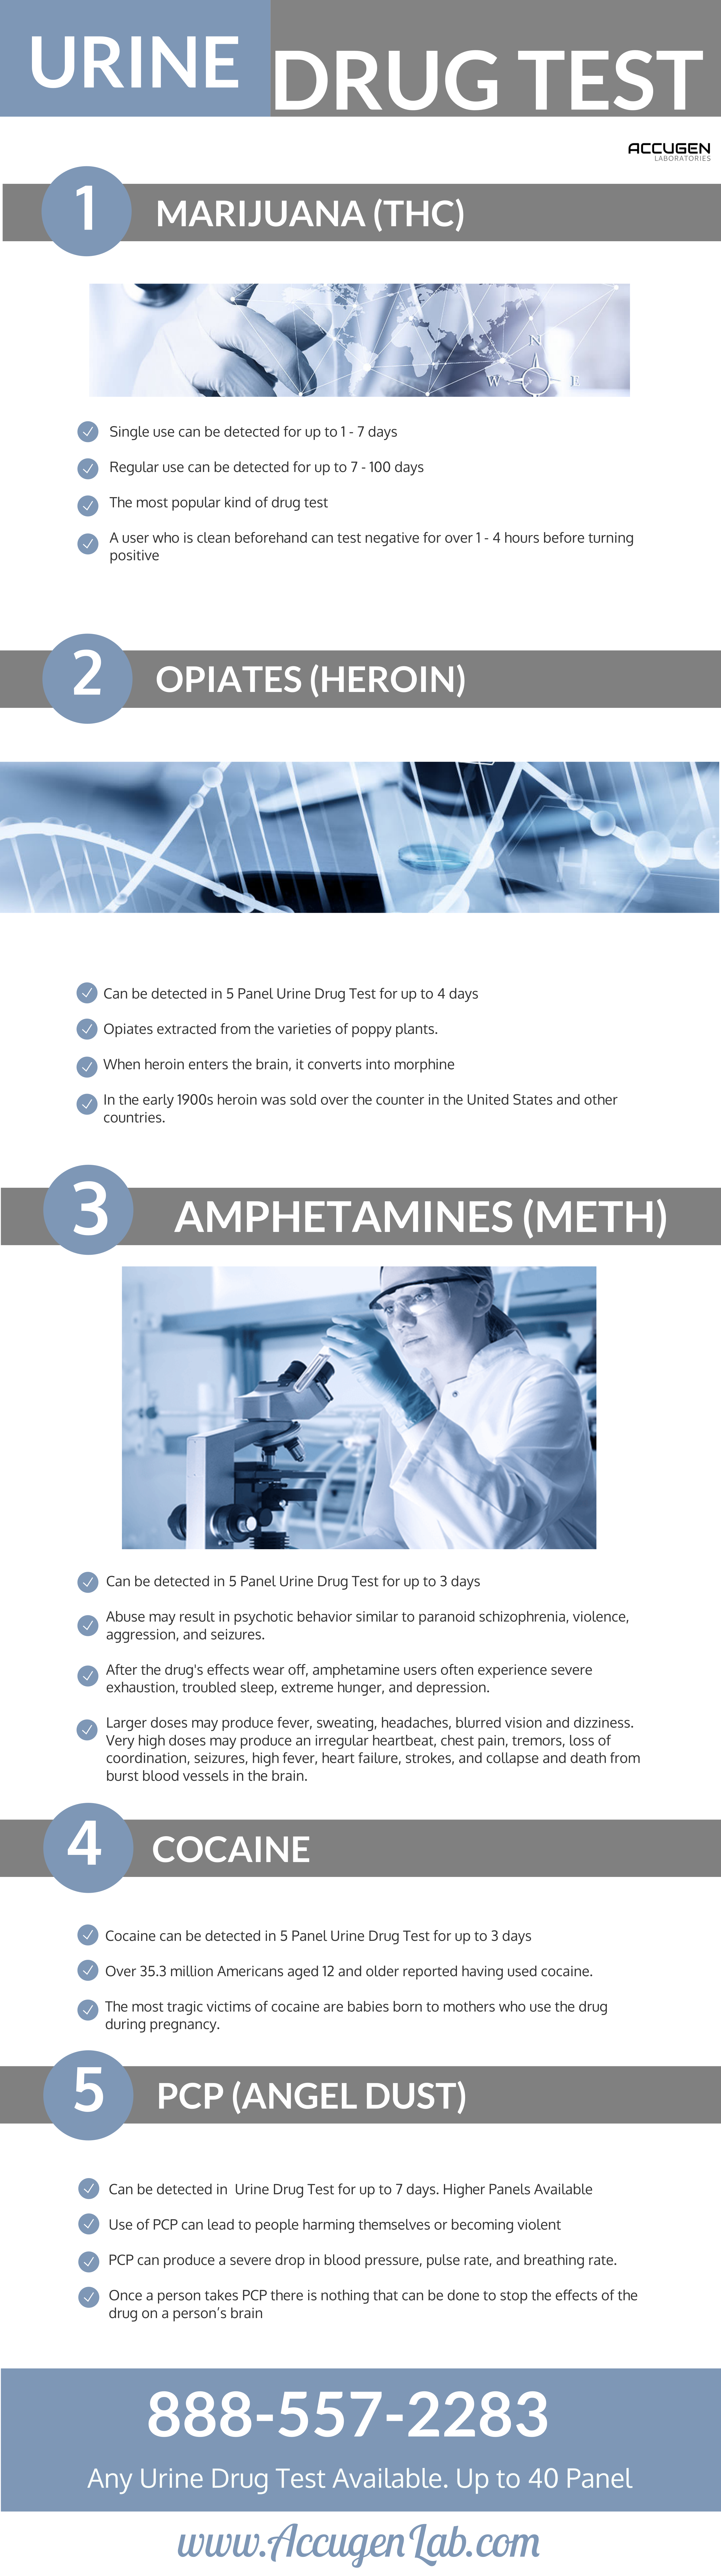 Urine Drug Test Pain management for individuals and businesses near